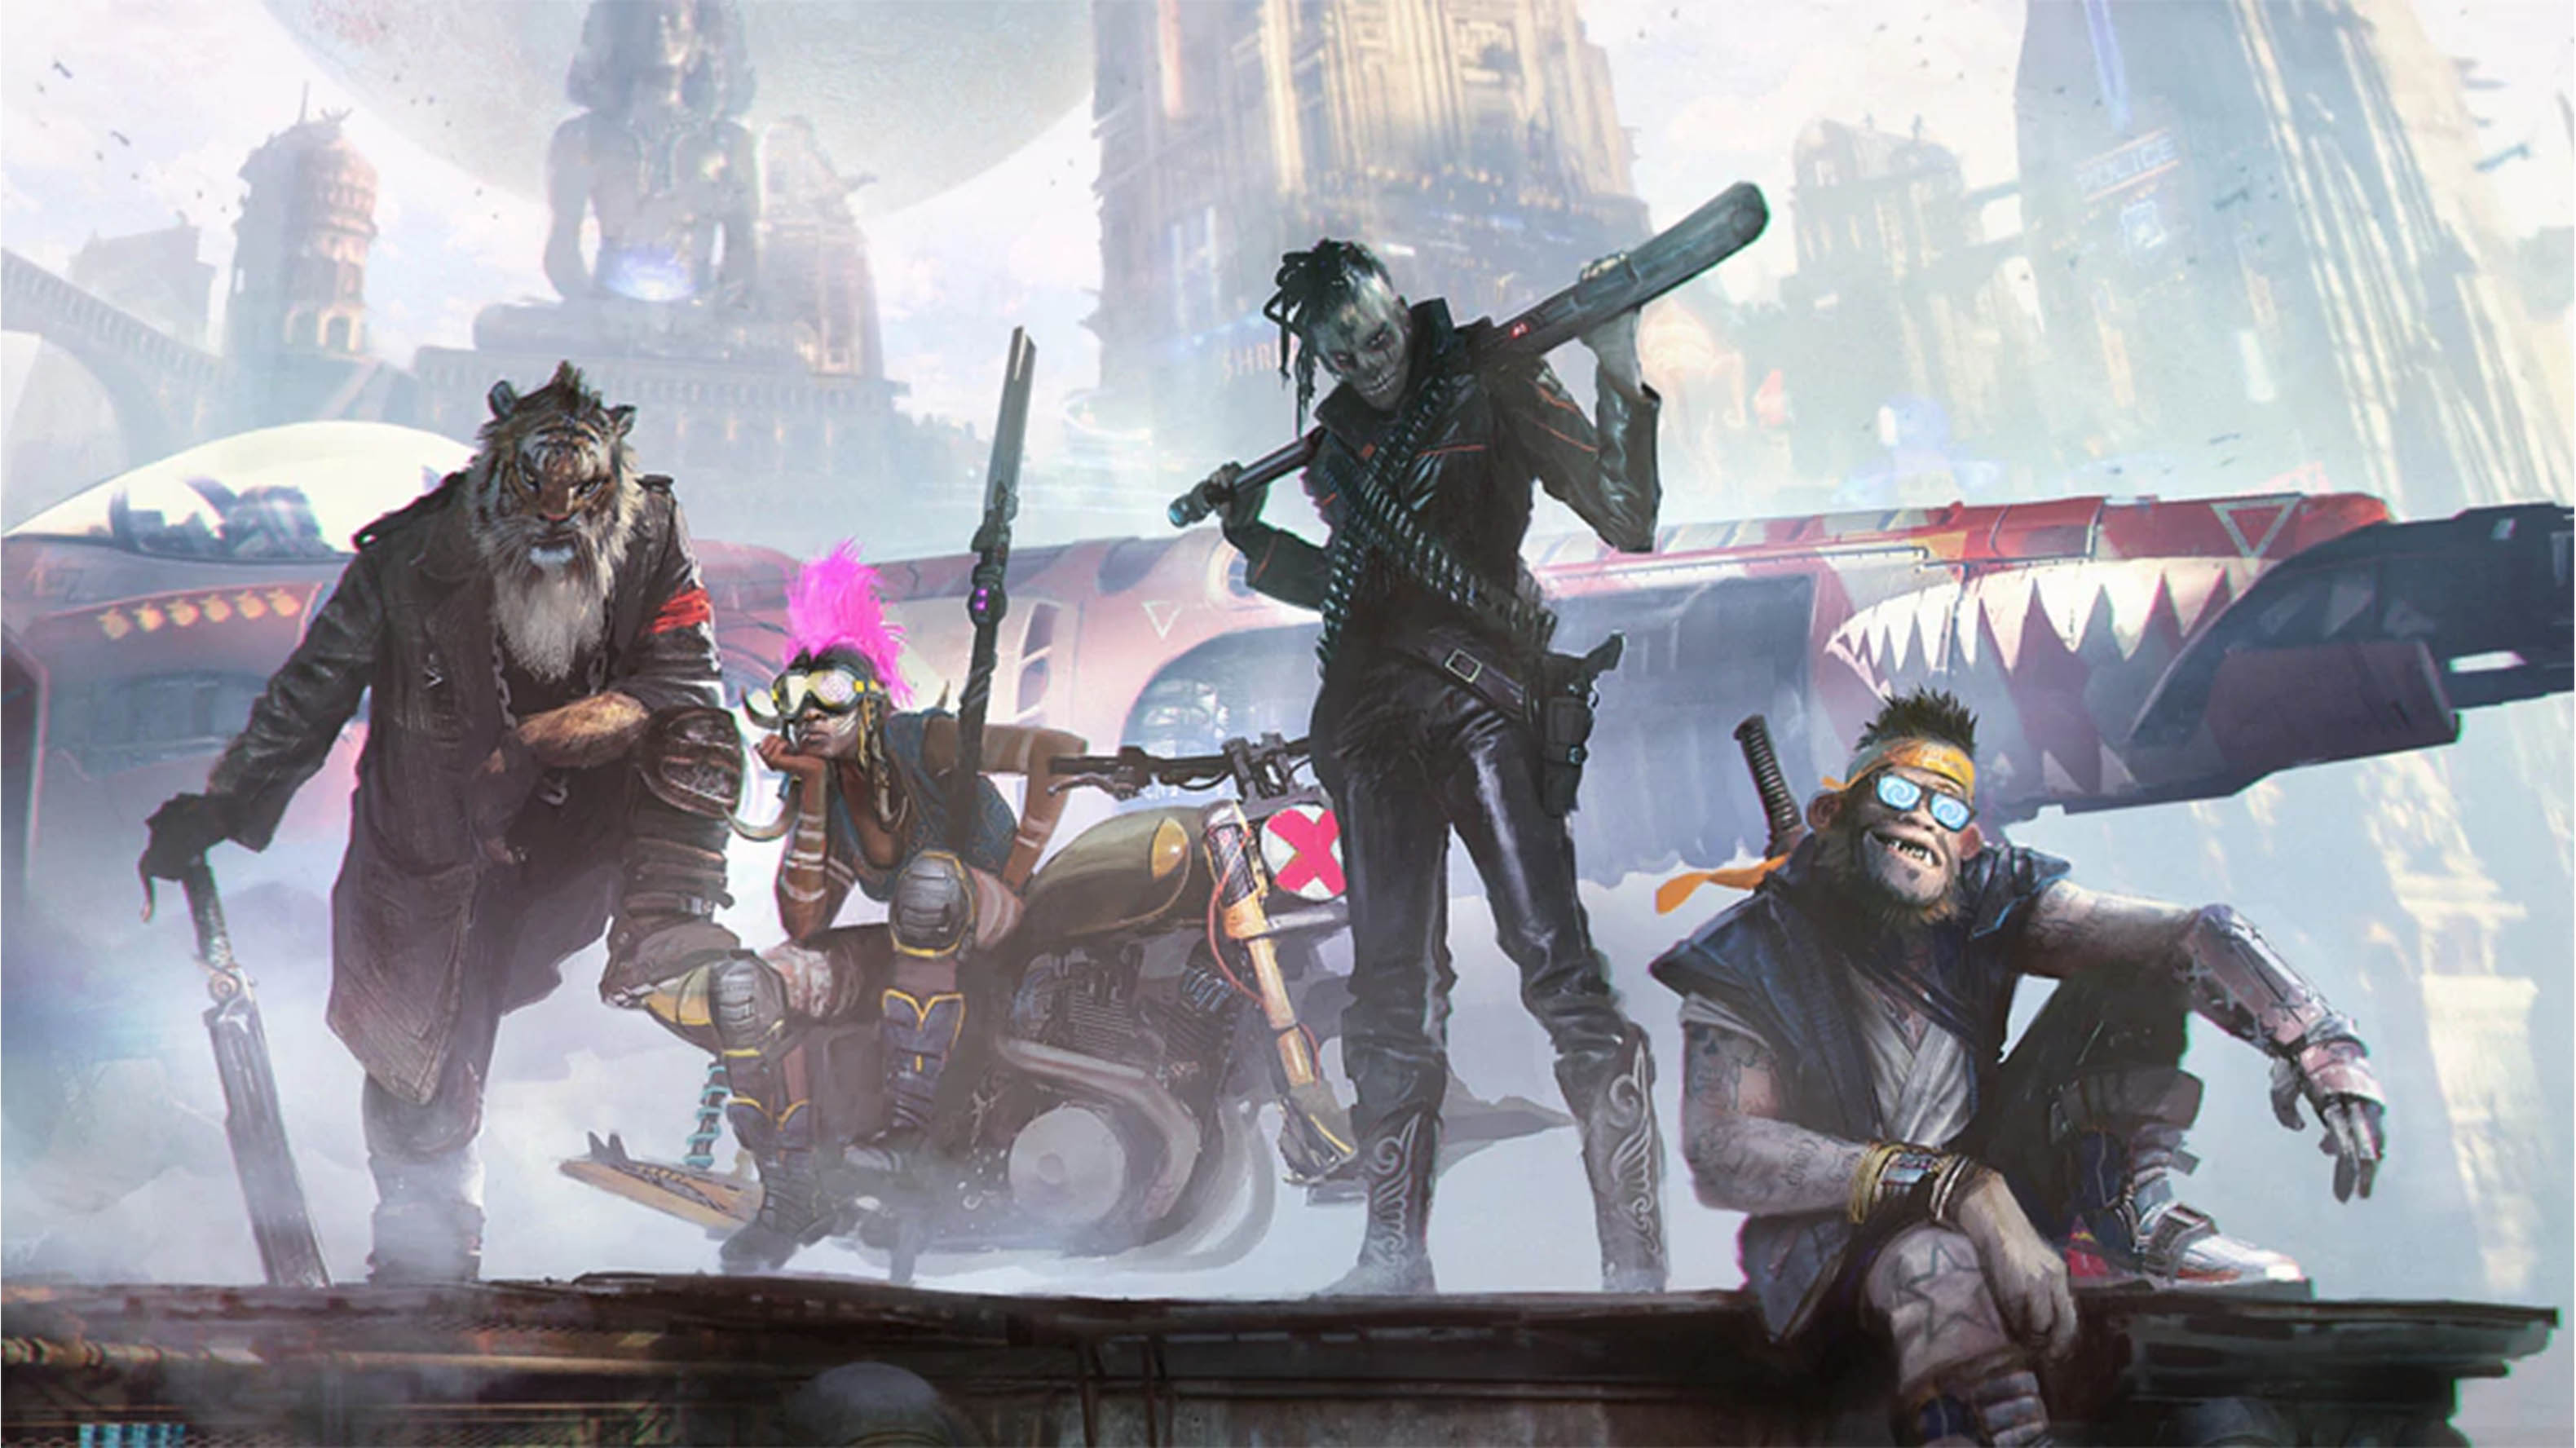 Ubisoft to show off 'Beyond Good & Evil 2' gameplay in 2021